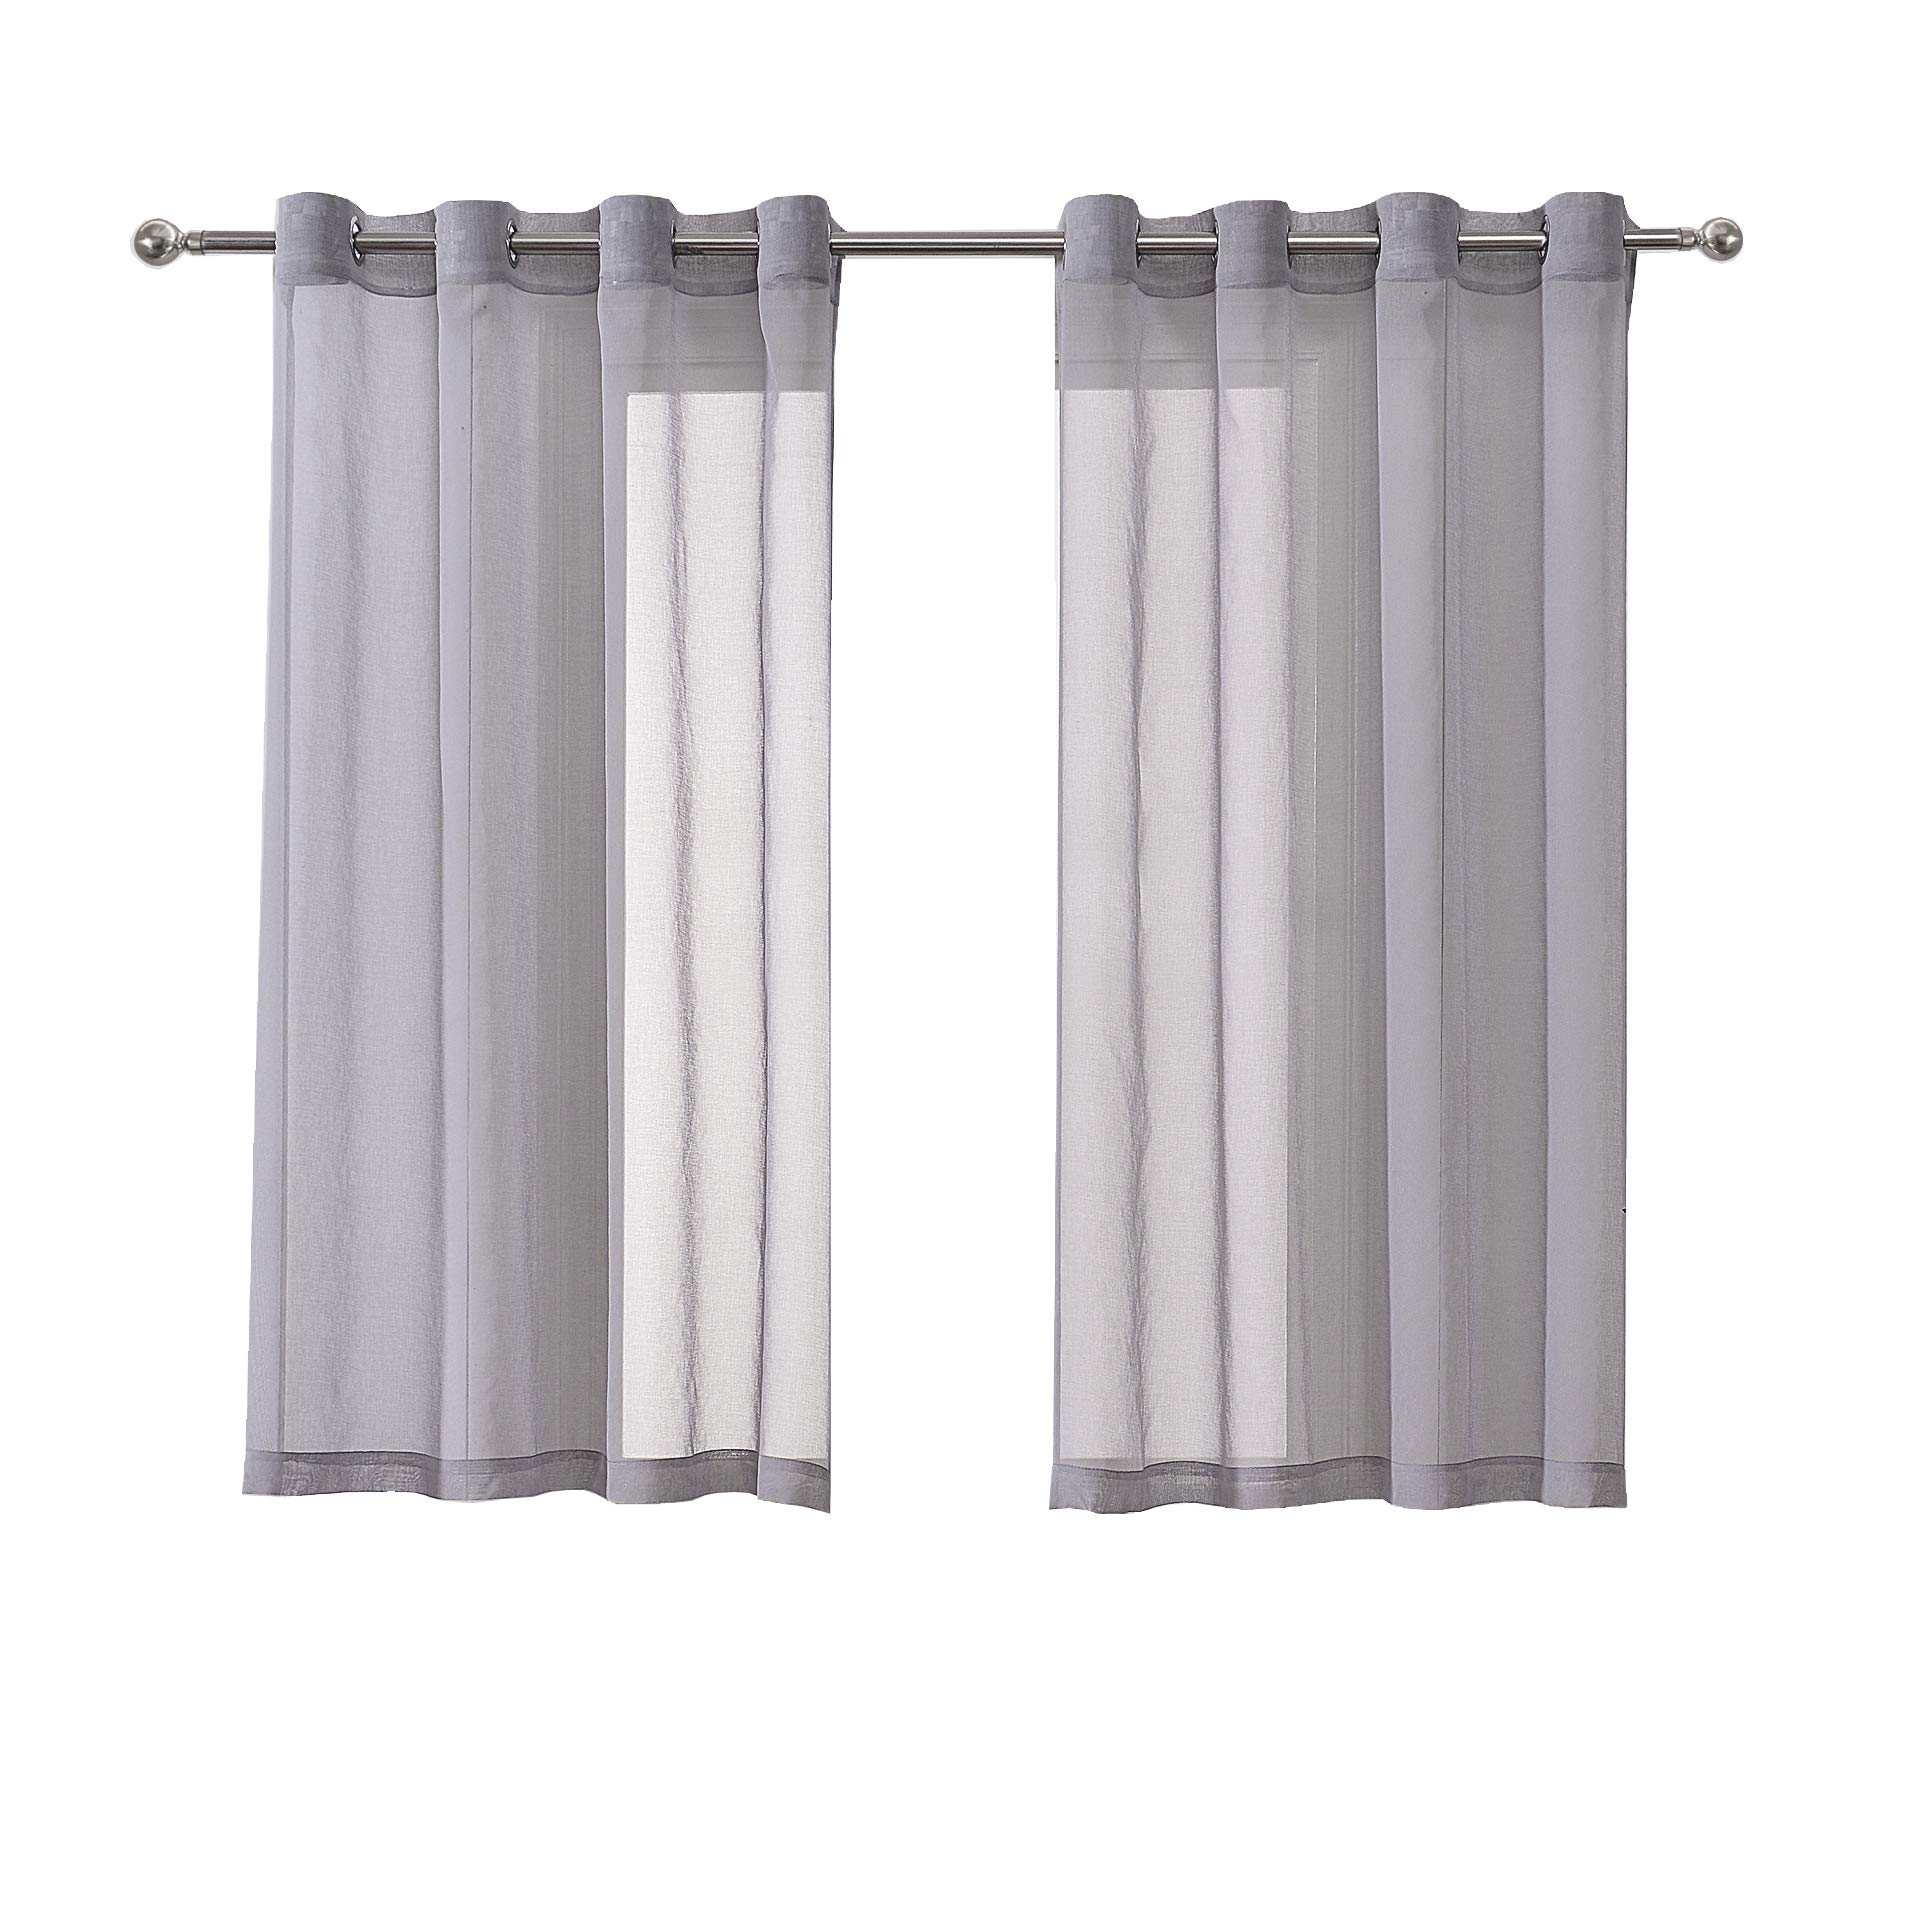 DWCN Sheer Curtains for Living Room Grey Faux Linen Look Voile Drapes Grommet Bedroom Window Curtain 52 x 63 Inch Long, 1 Pair Set of 2 Panels